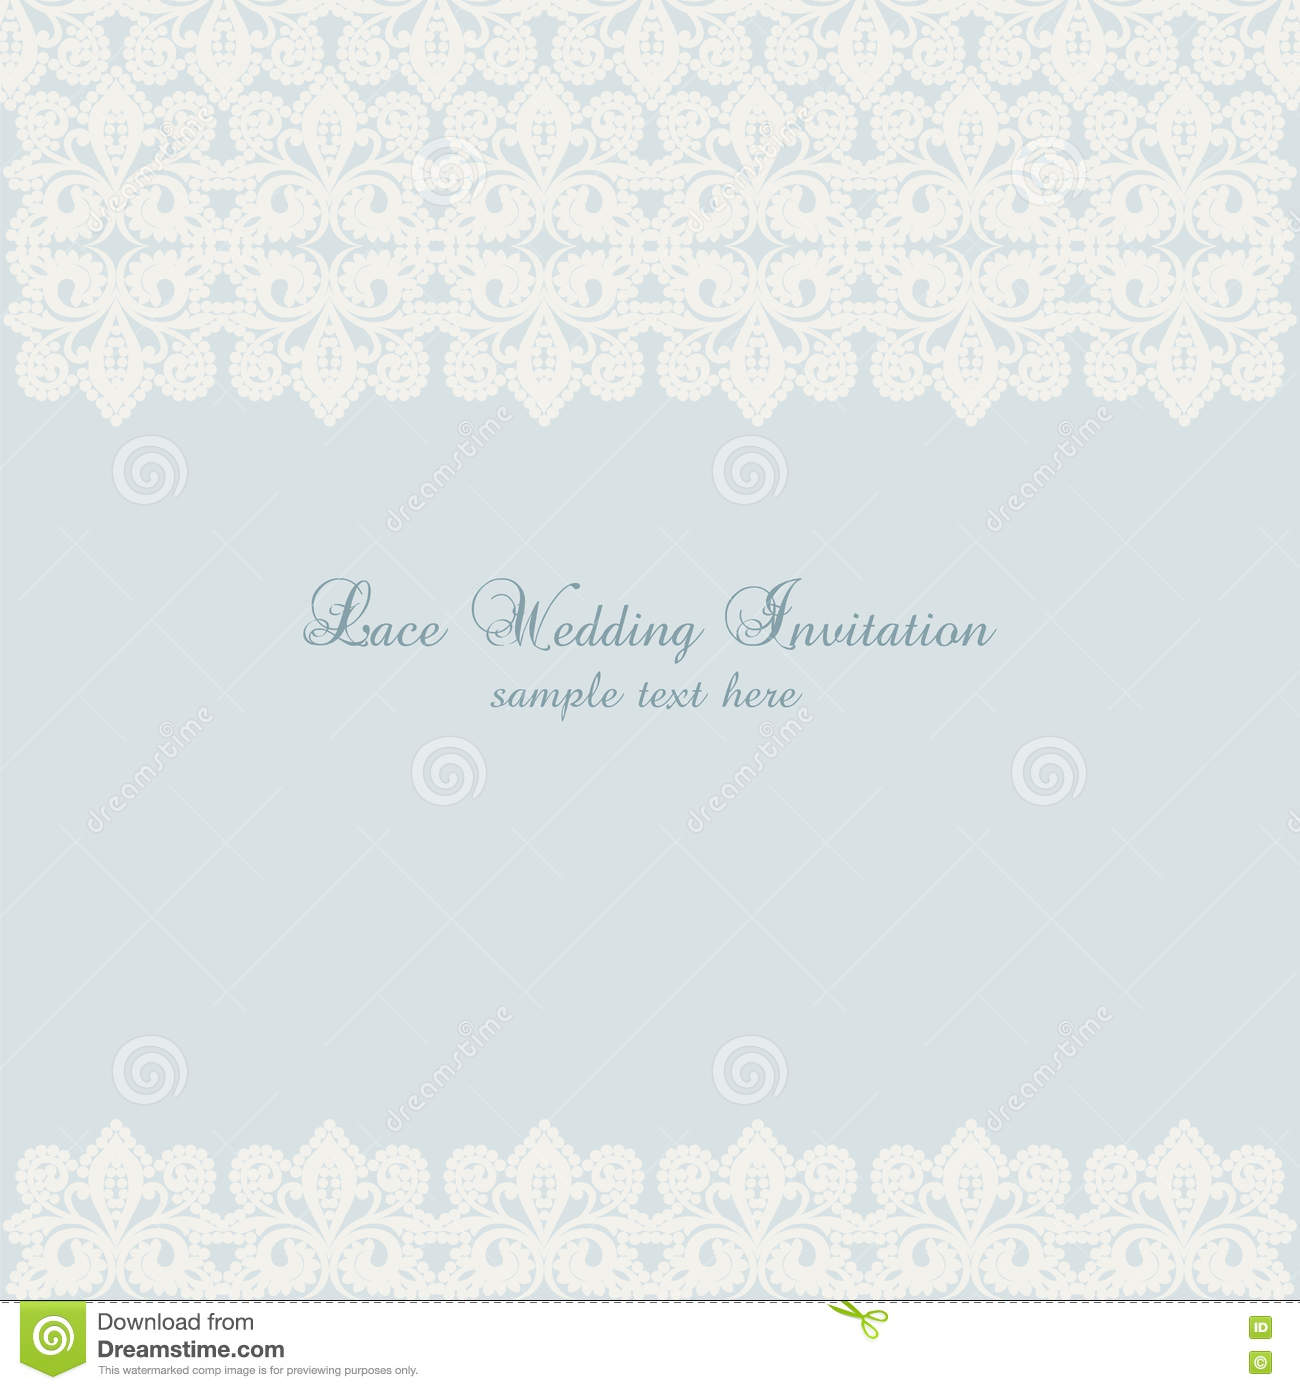 Crochet Wedding Invitations: Vector Lace Crochet Card Background Stock Vector